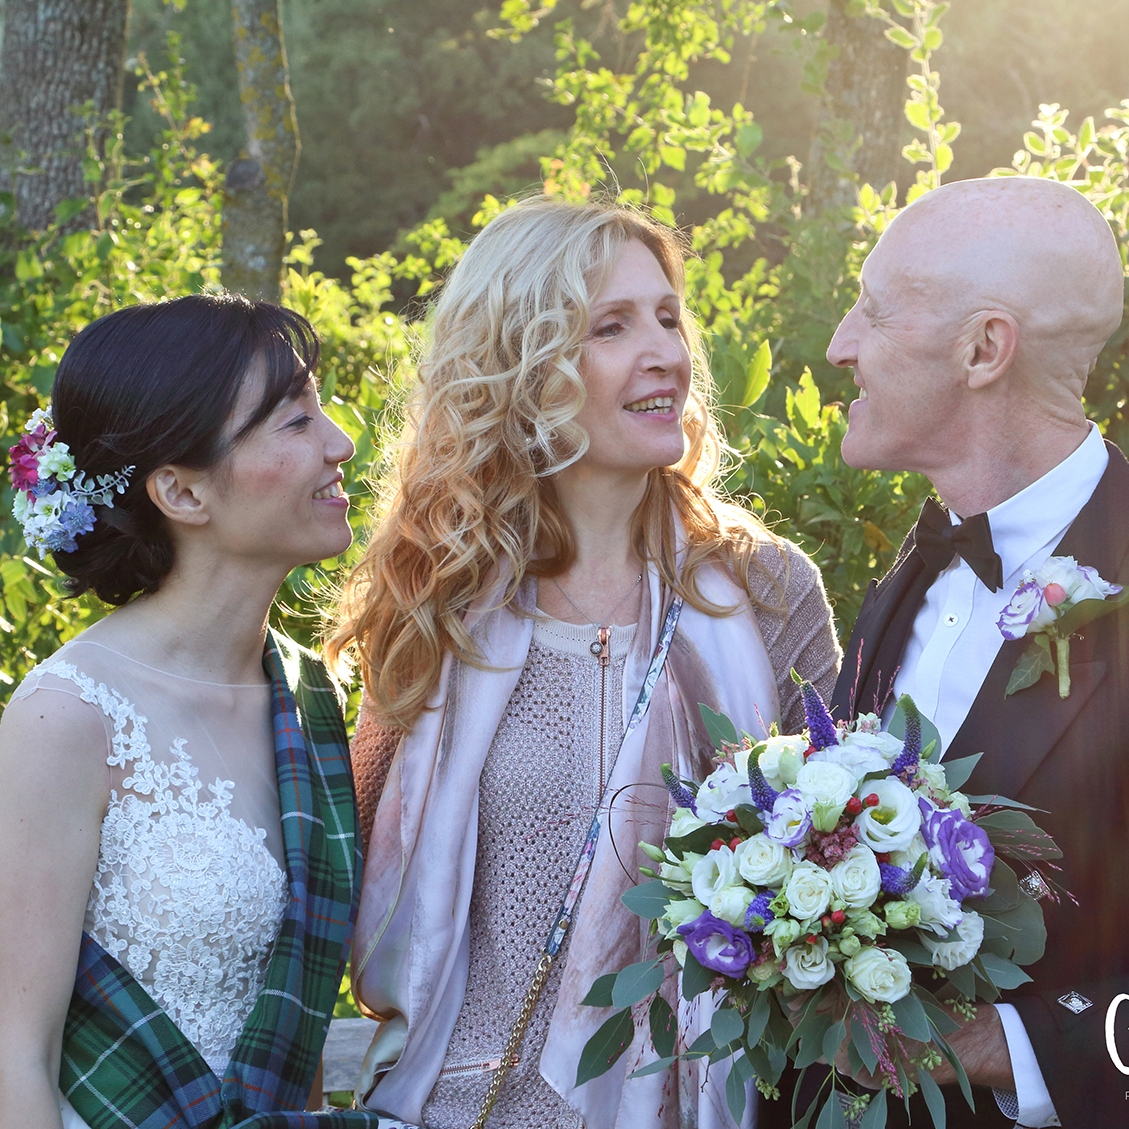 French wedding celebrant in south of France aria